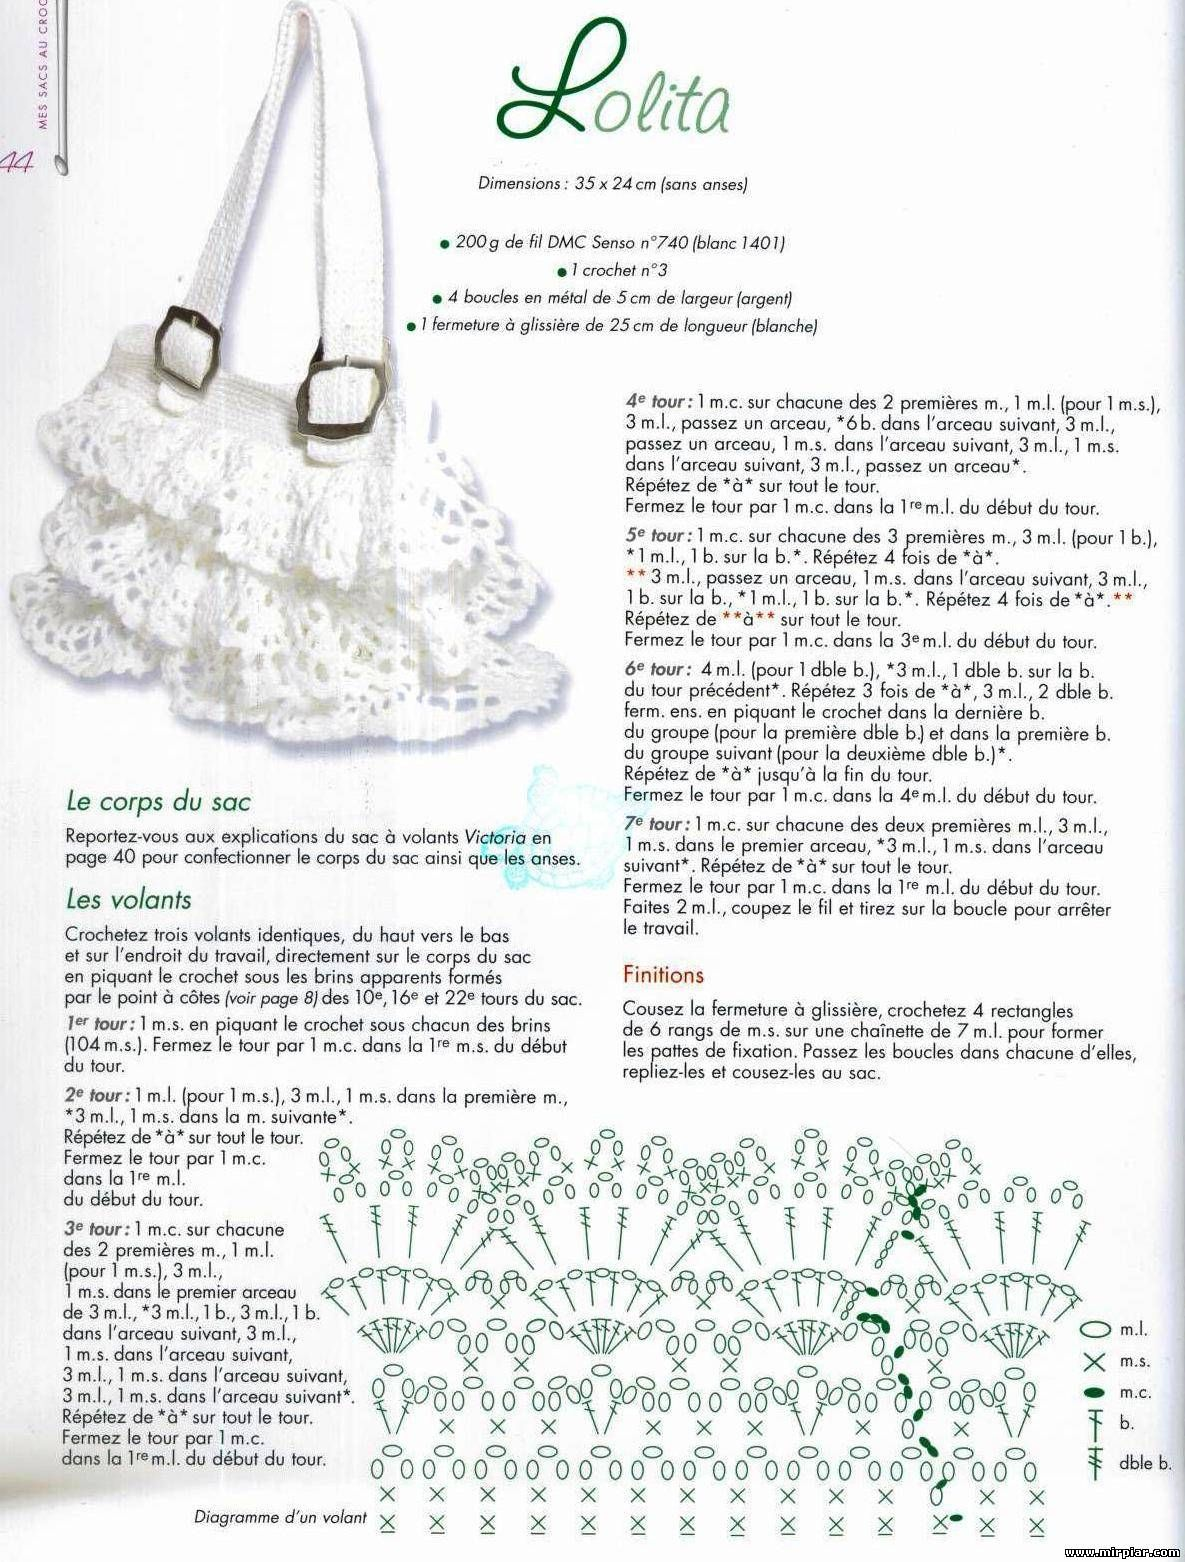 Crochet recycled plastic bags - Knit And Wedding Bridal Accessories And Free Pattern Free Crochet Bag Pattern Tote Bag Recycled Plastic